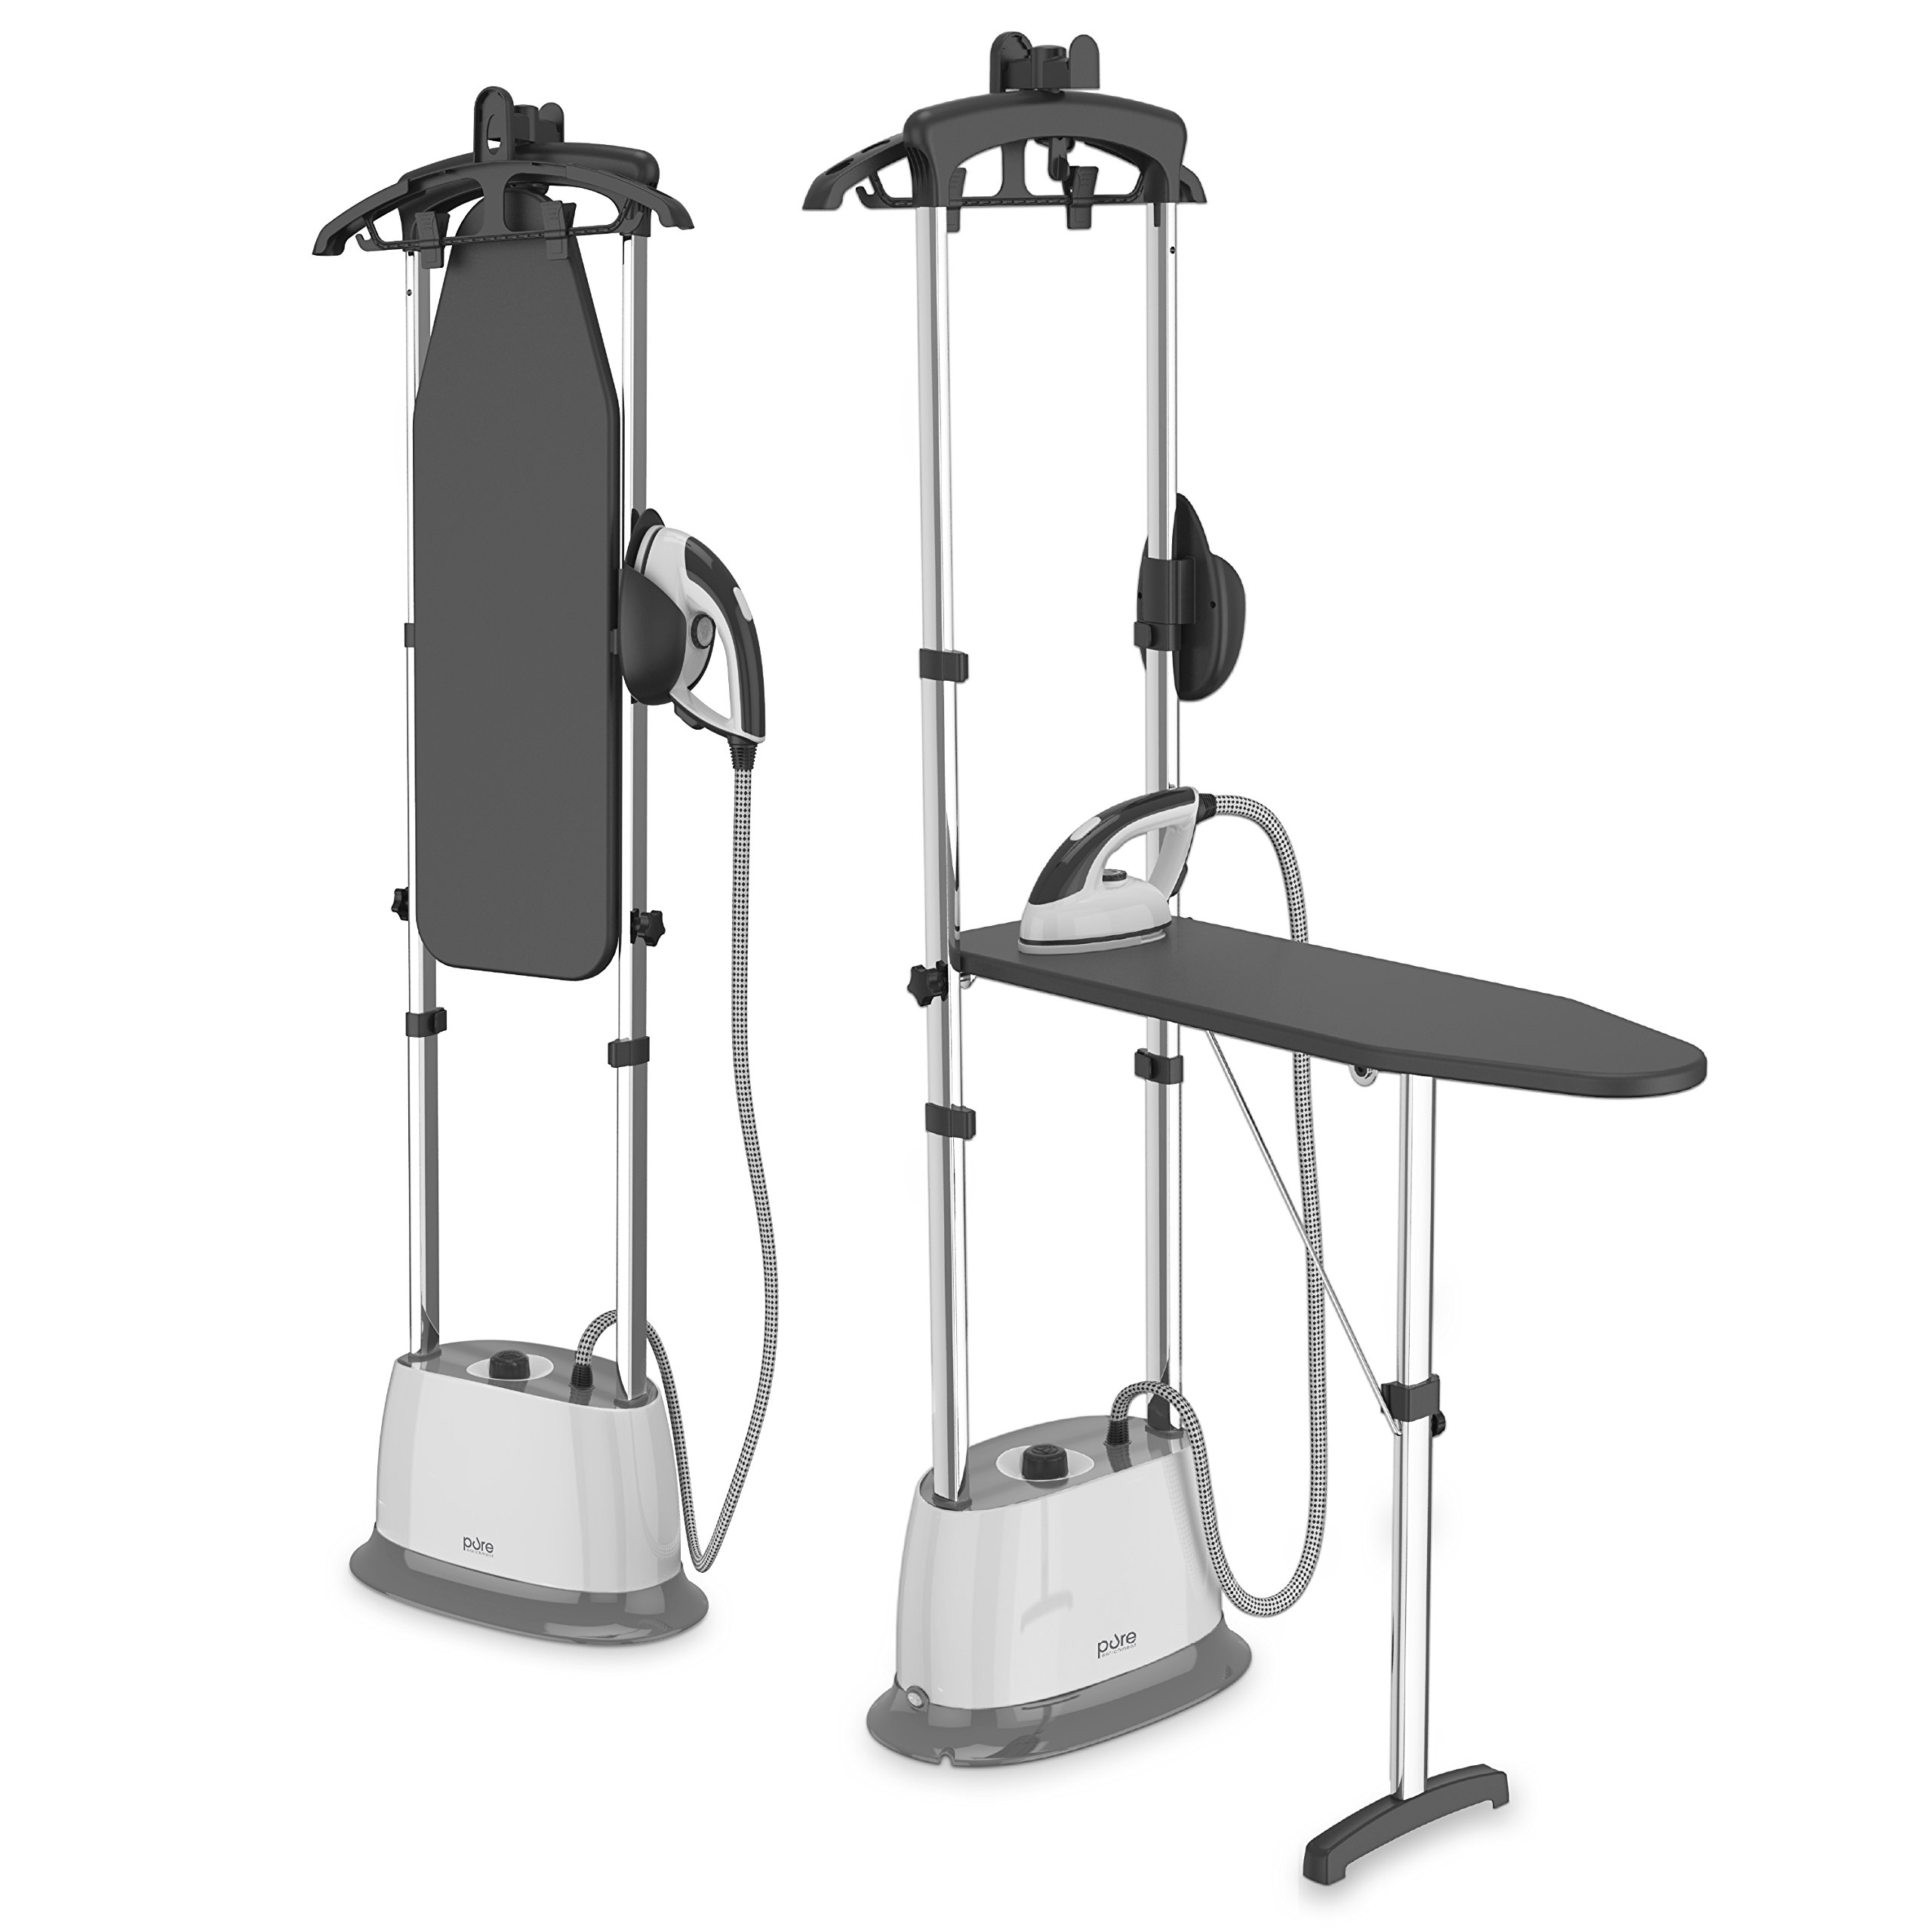 PureSteam Duo Iron & Pressurized Garment Steamer – Heavy Duty 1600-Watt Power with 1 Liter Water Tank, Built-In Ironing Board, and Deluxe Garment Hanger with Clips by Pure Enrichment